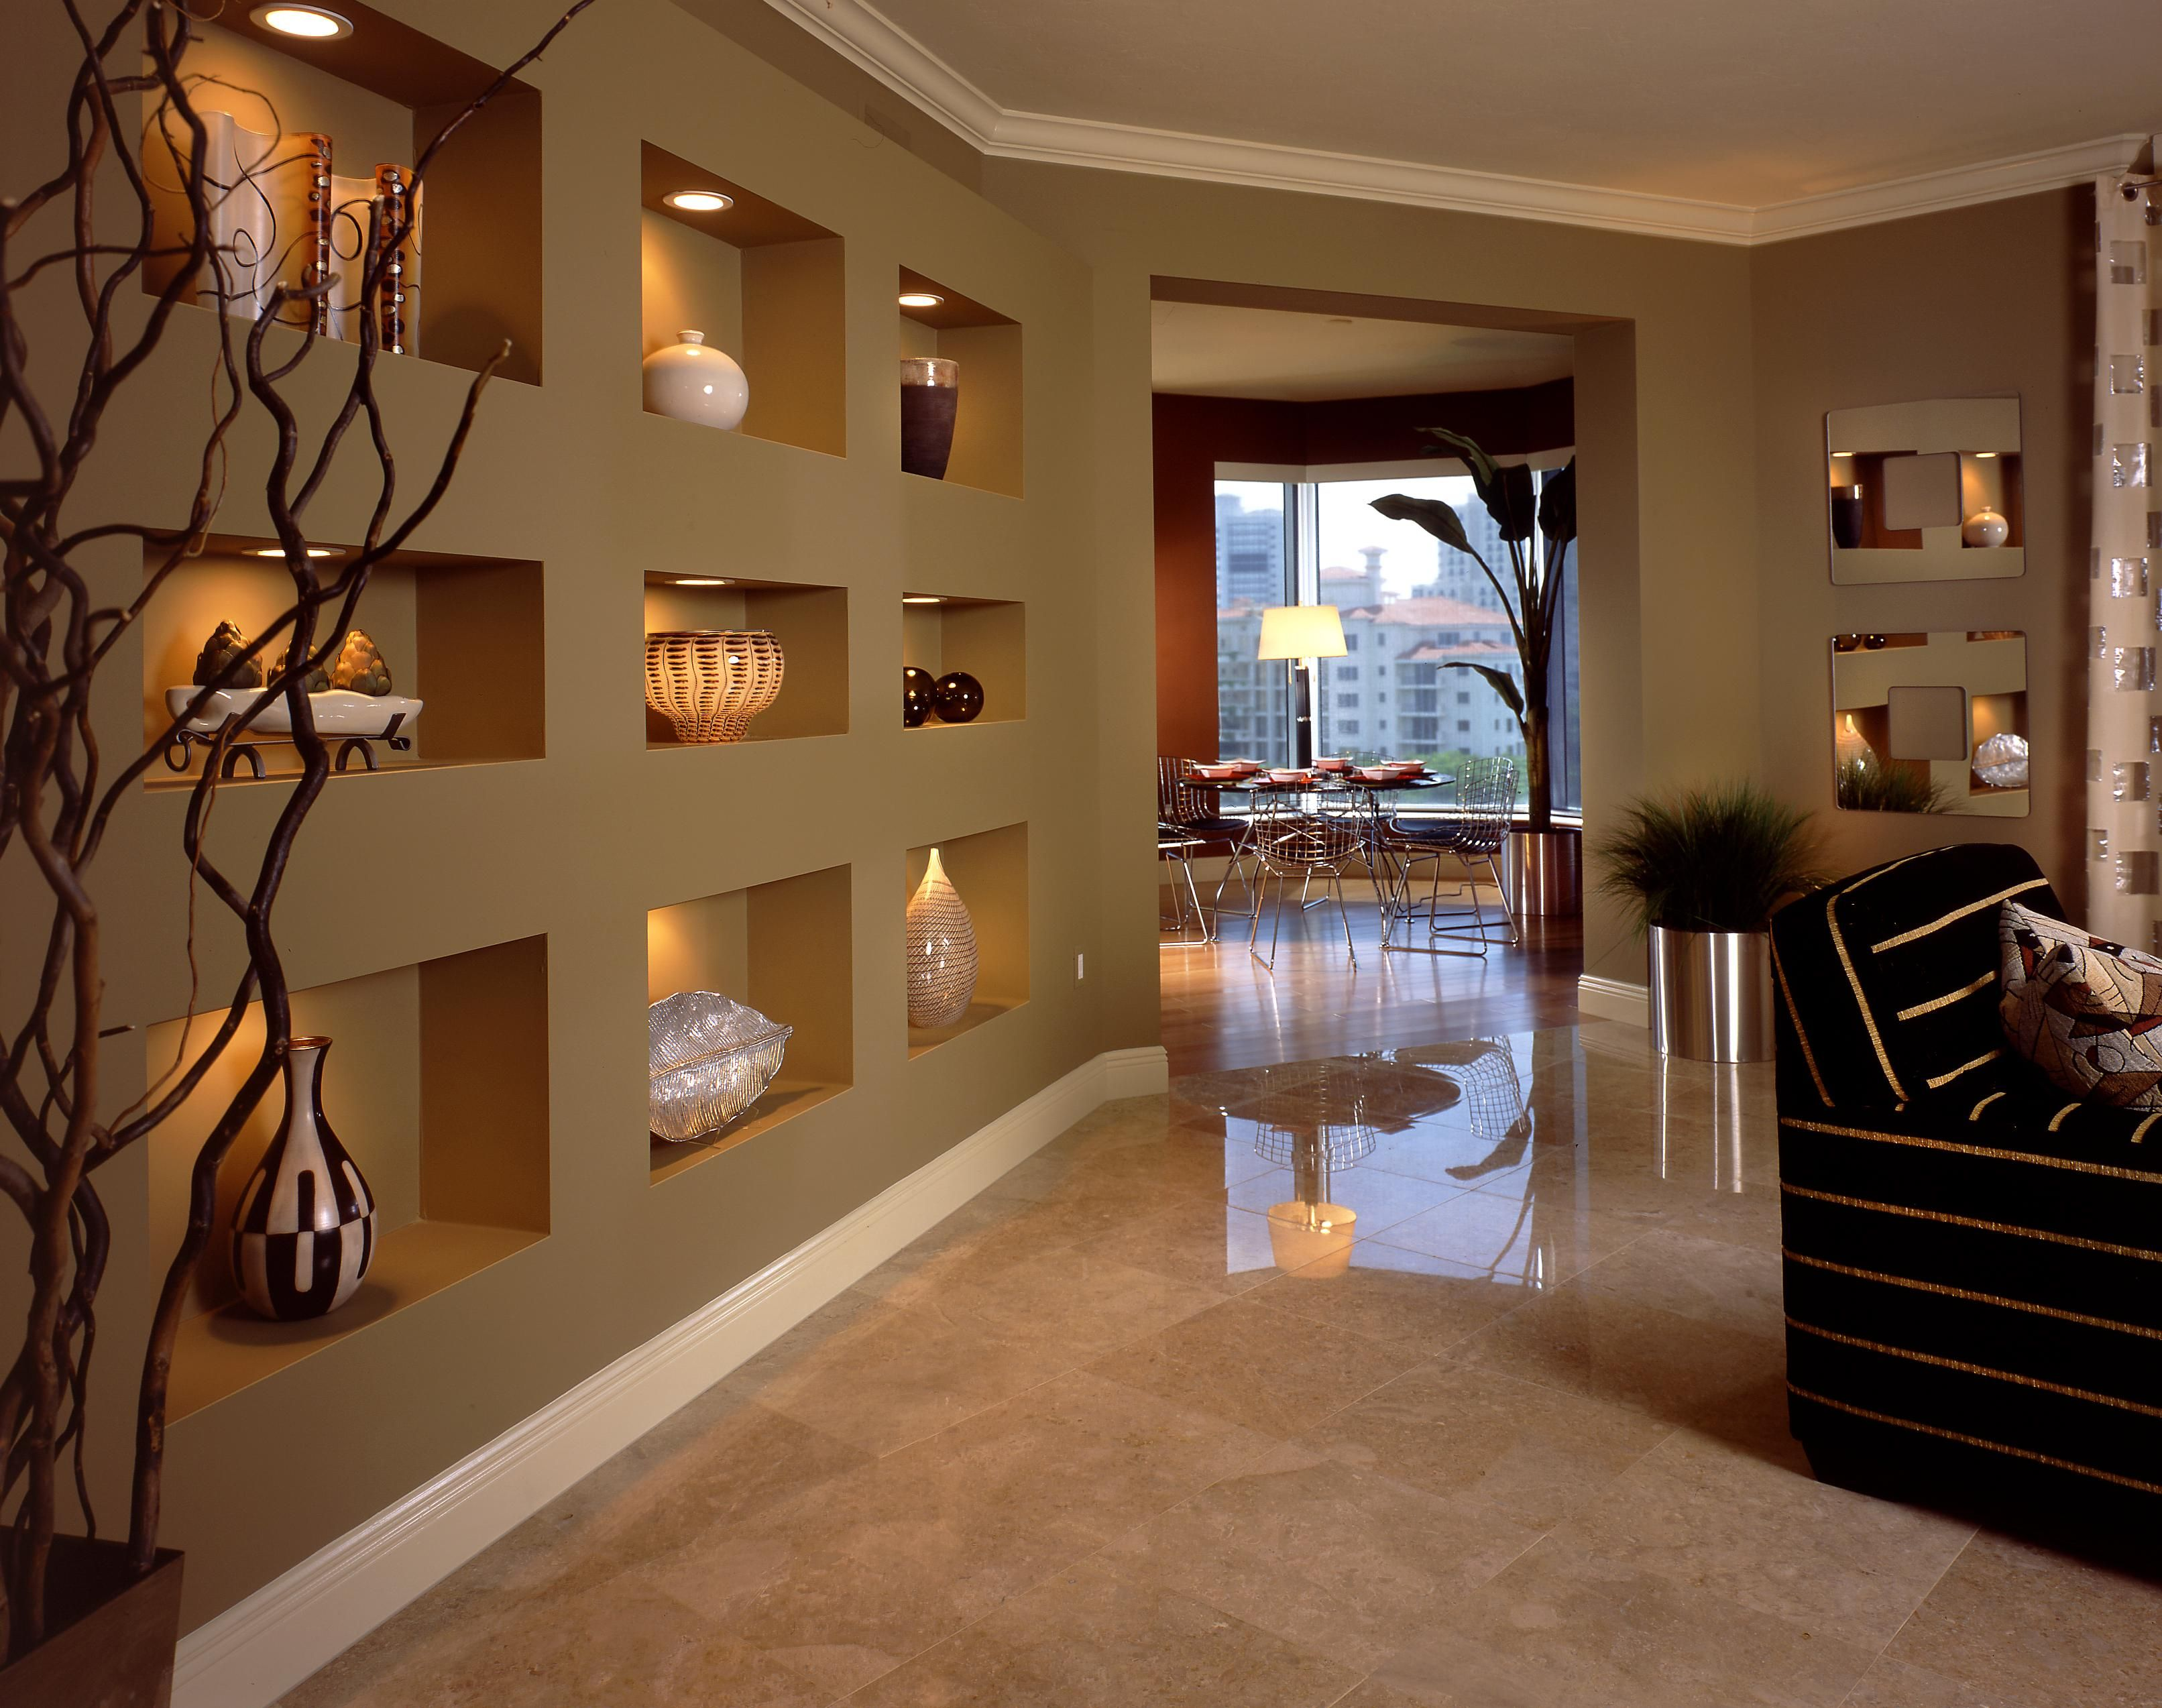 Z Tip Have Treasured Items To Display Squared Drywall Wall Niches Paired With Art Lighting